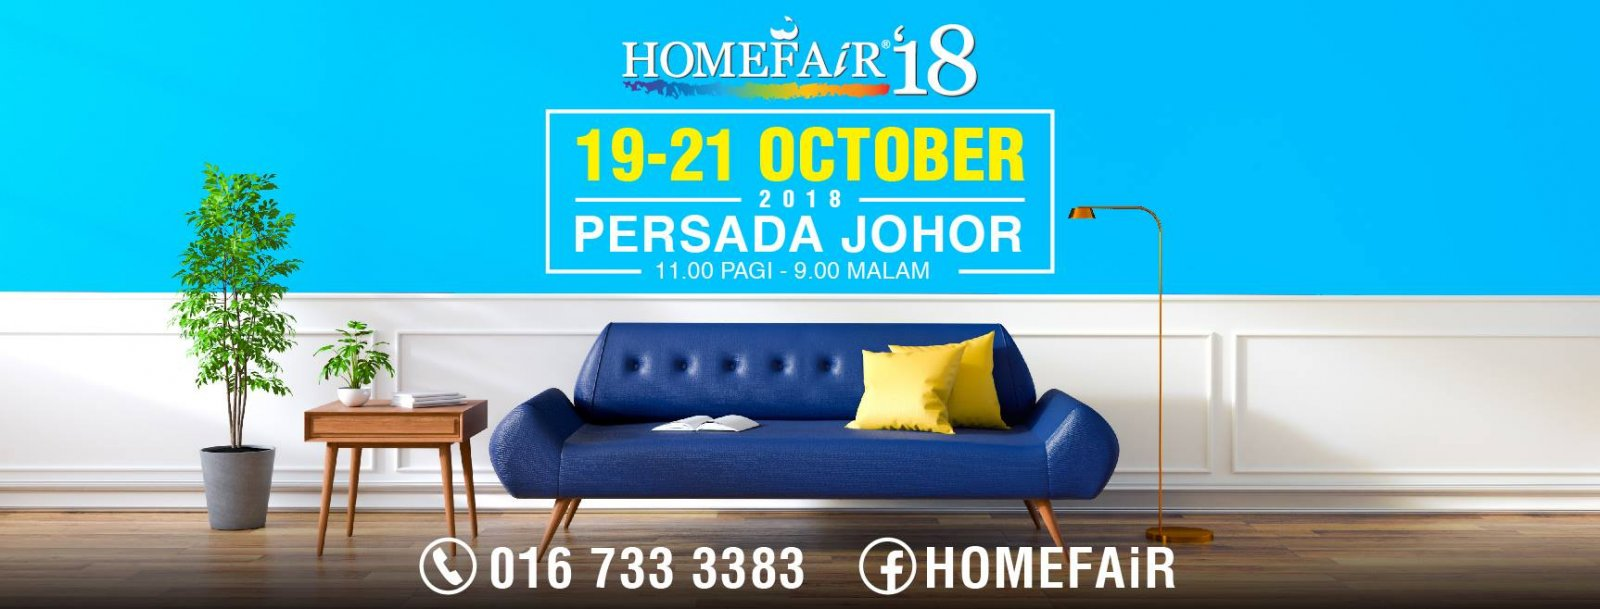 Home Fair '18 ~ Persada JohorPlease came visit us # from 19 - 21/10/18 ( Fri- Sun ), 11a.m till 10p.m